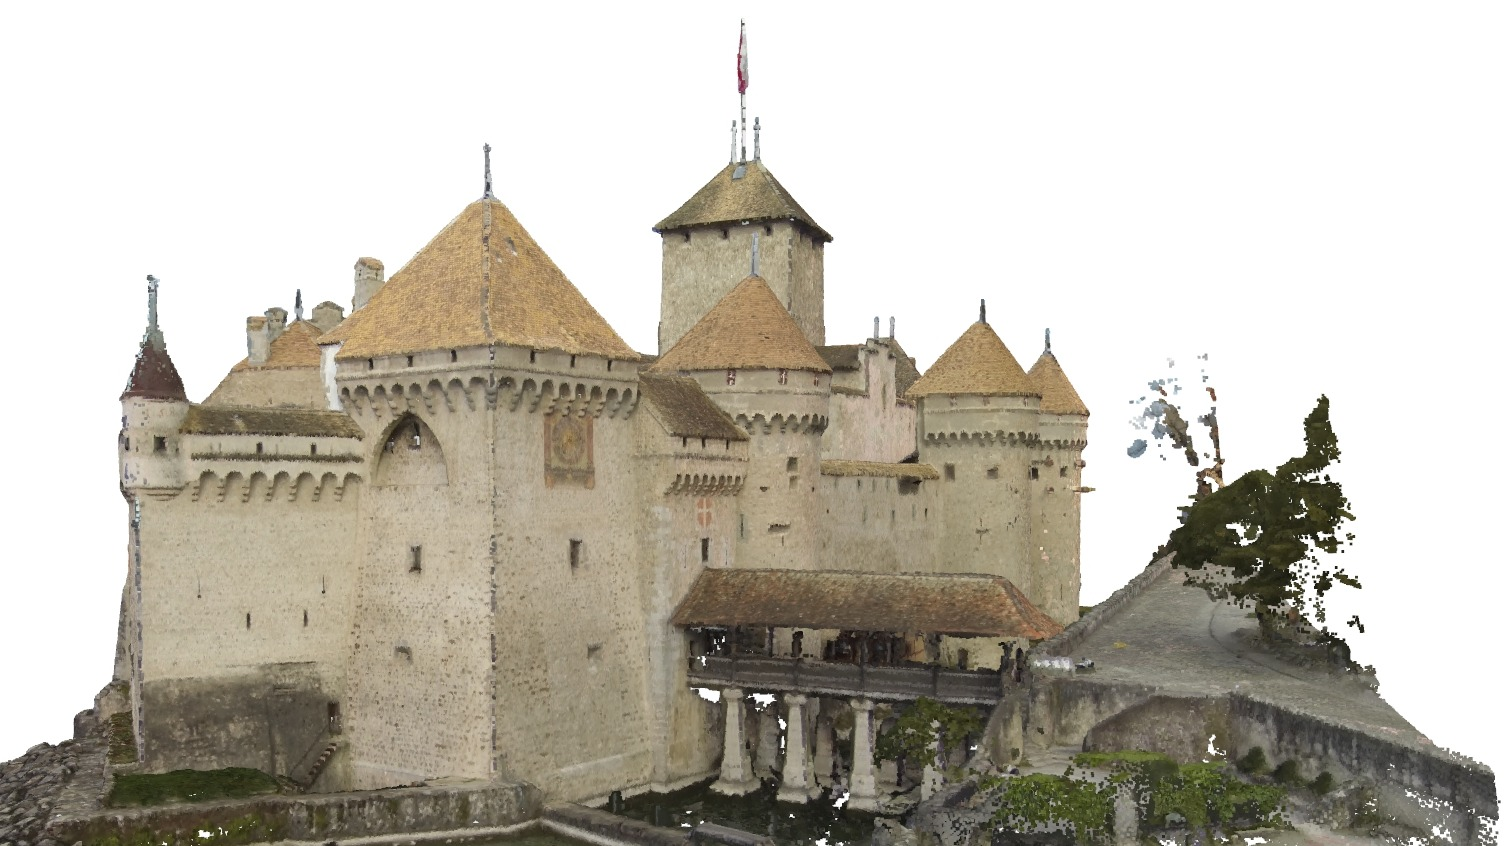 A model of the exterior of Castle Chillon.